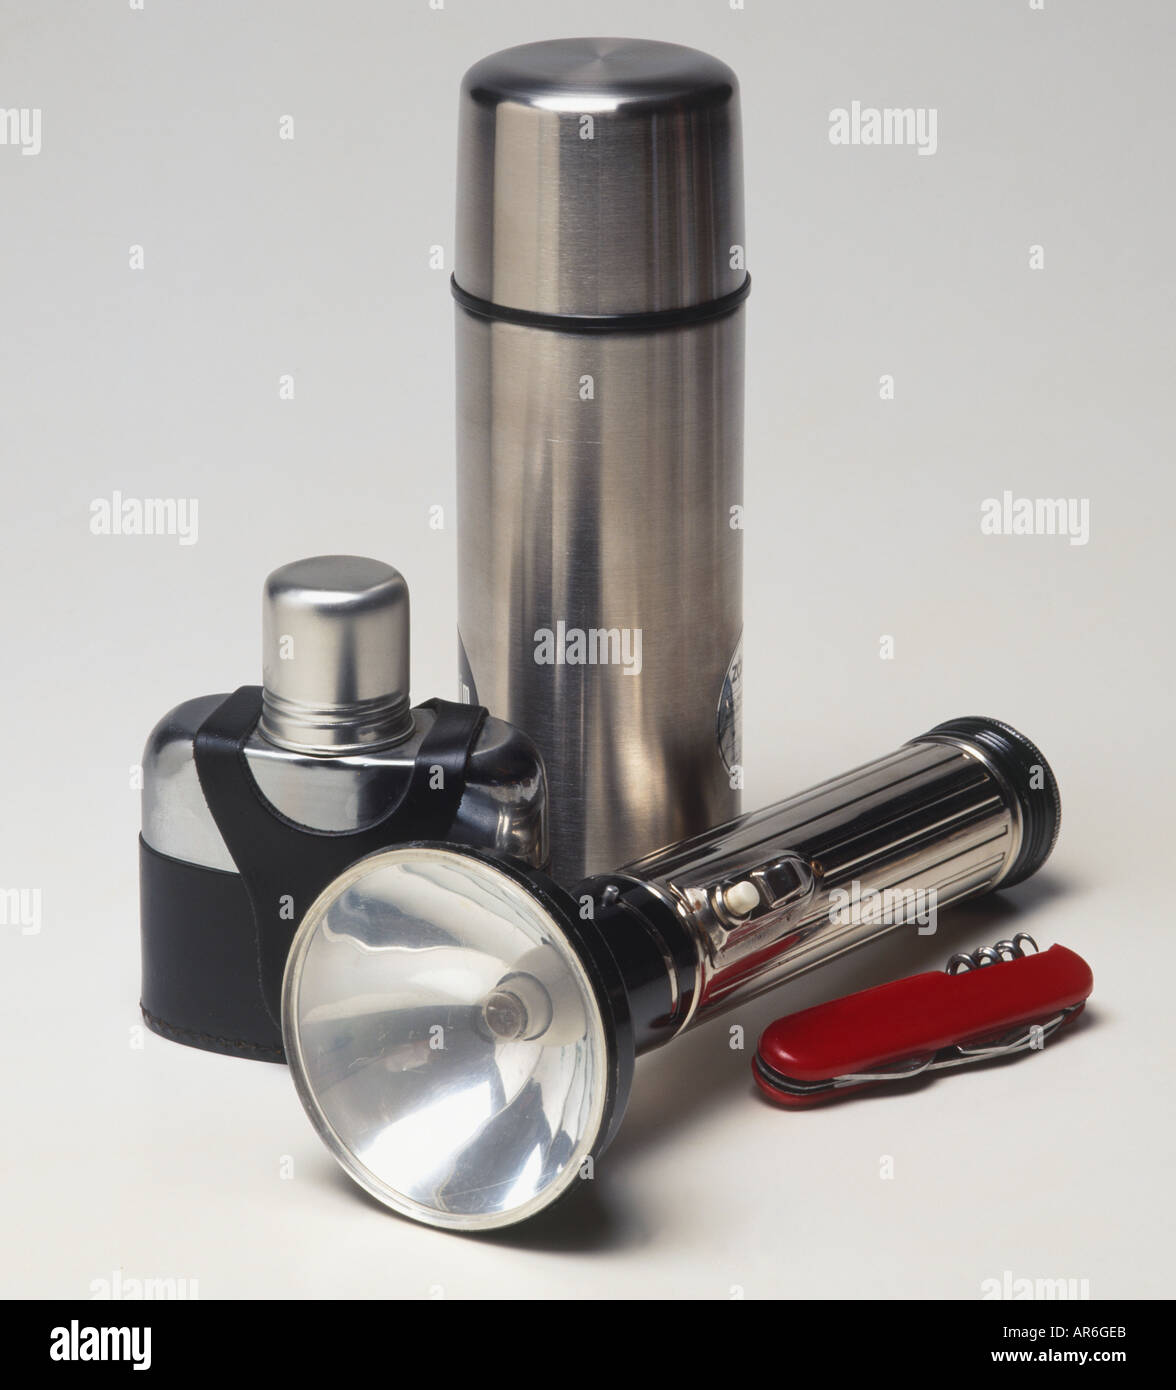 Selection of basic survival equipment; metal drinking flask, torch, hip flask, and penknife. - Stock Image